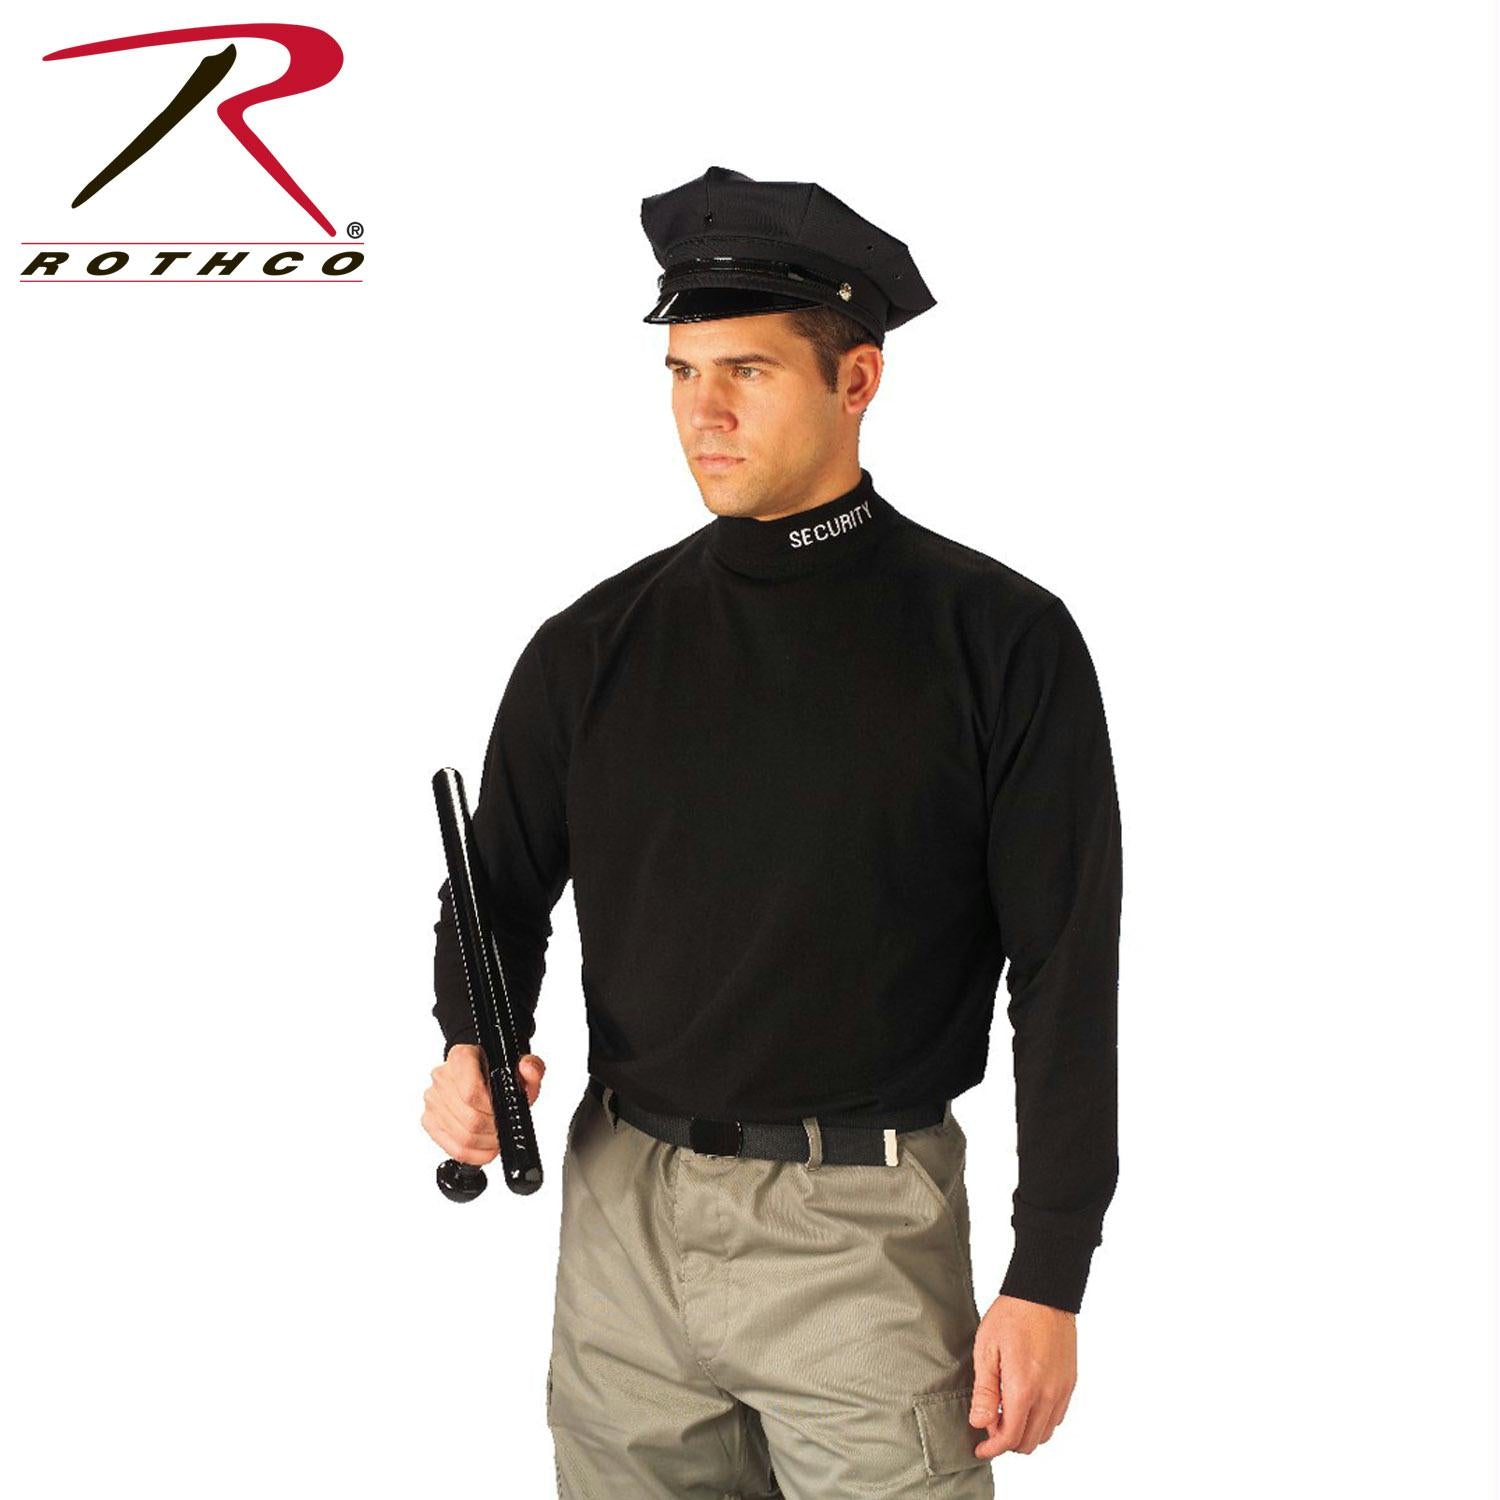 Rothco Security Mock Turtleneck - XL